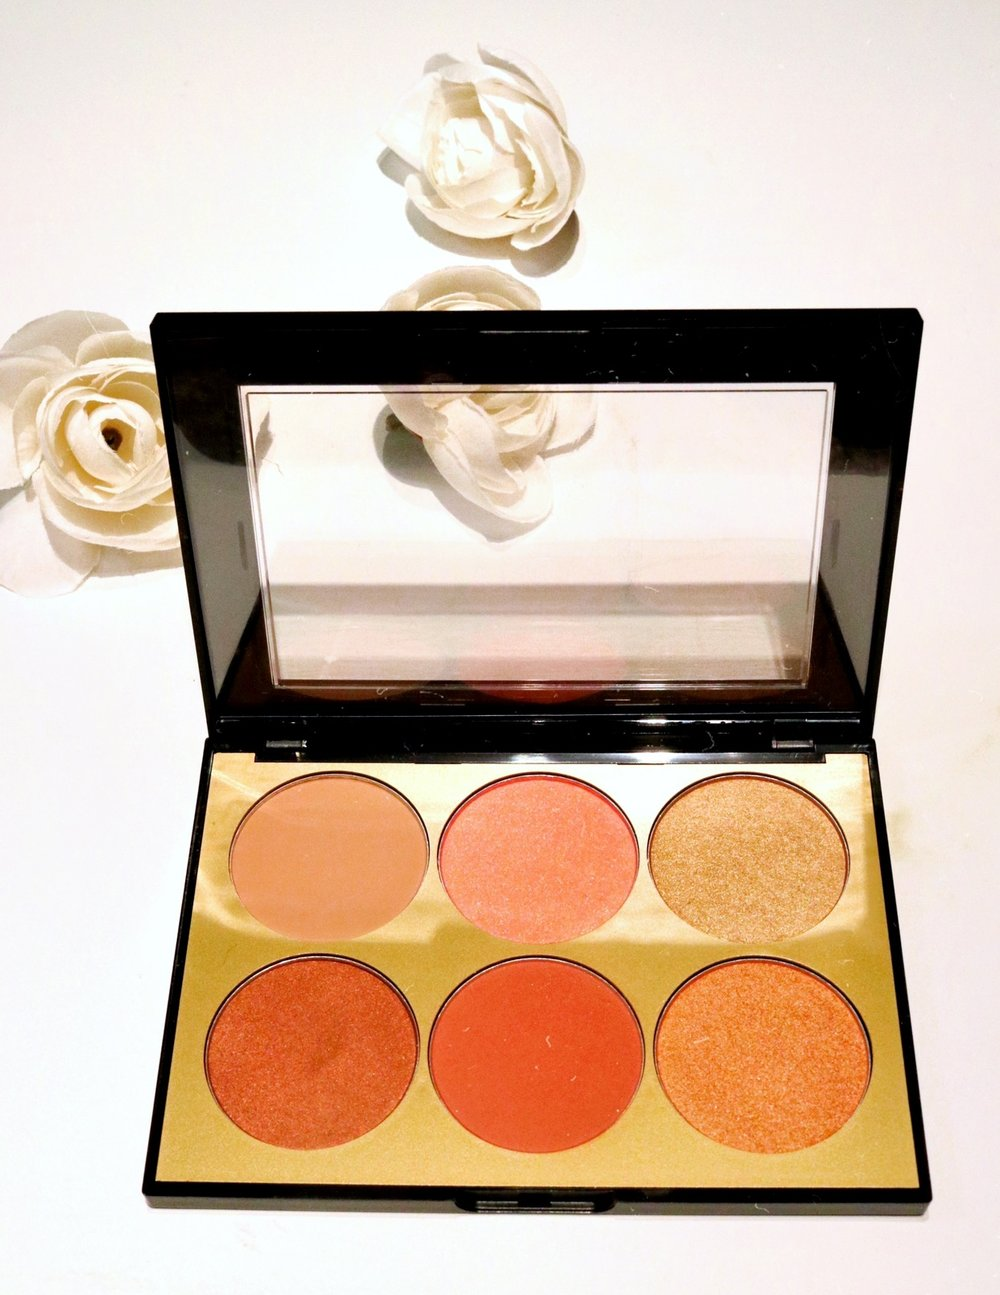 SEPHORA COLLECTION Contour Blush Palette - TEXTURE: MATTE SHIMMERPIGMENTATION: 7BLENDABILITY: 10HONORABLE: CRUELTY FREE